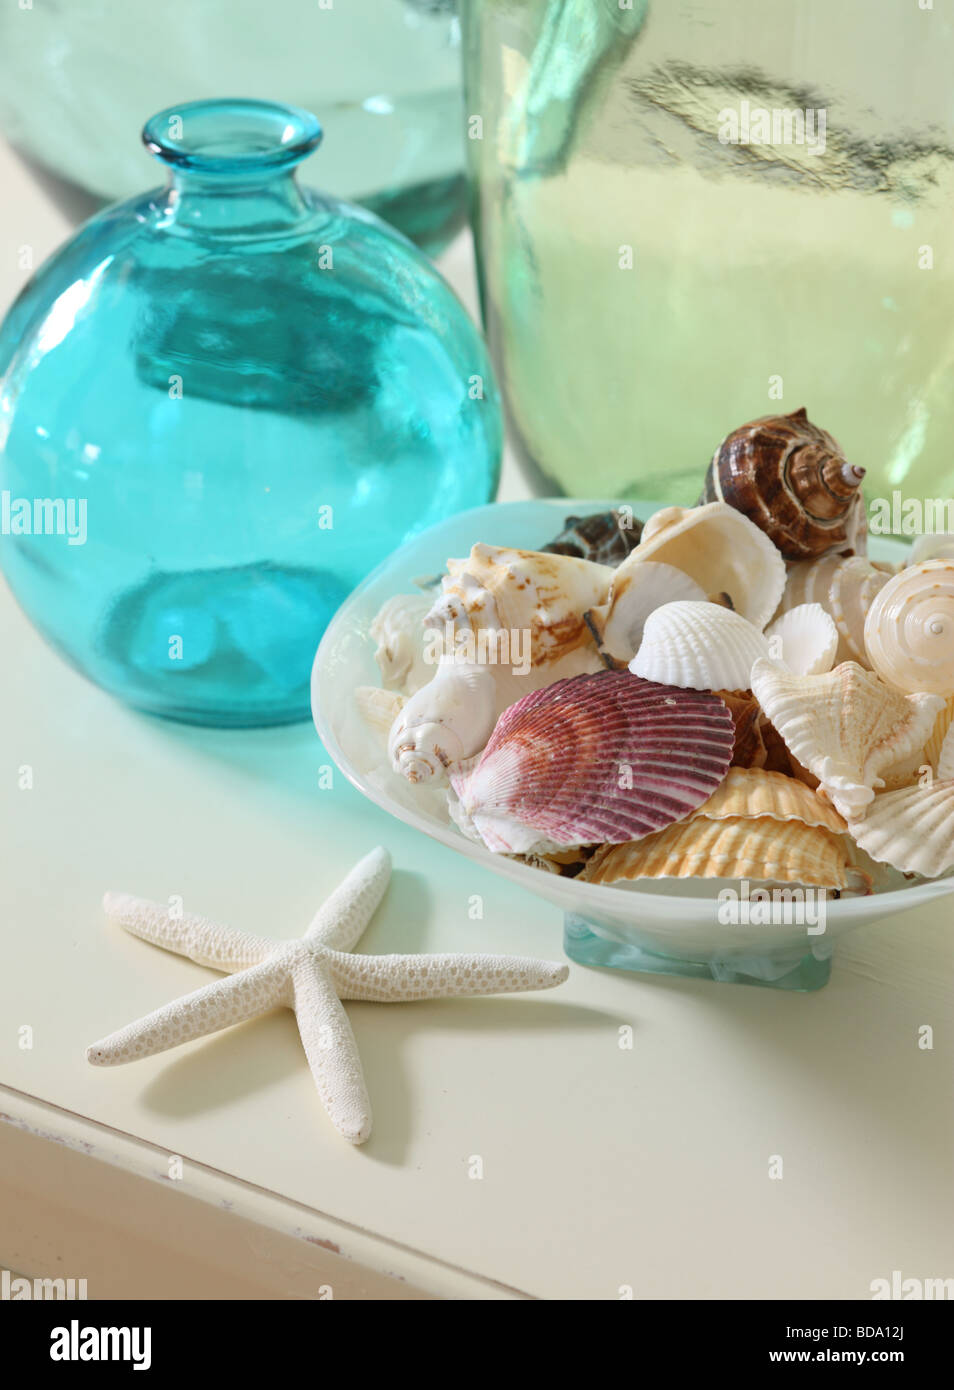 Shells and colorful glass - Stock Image